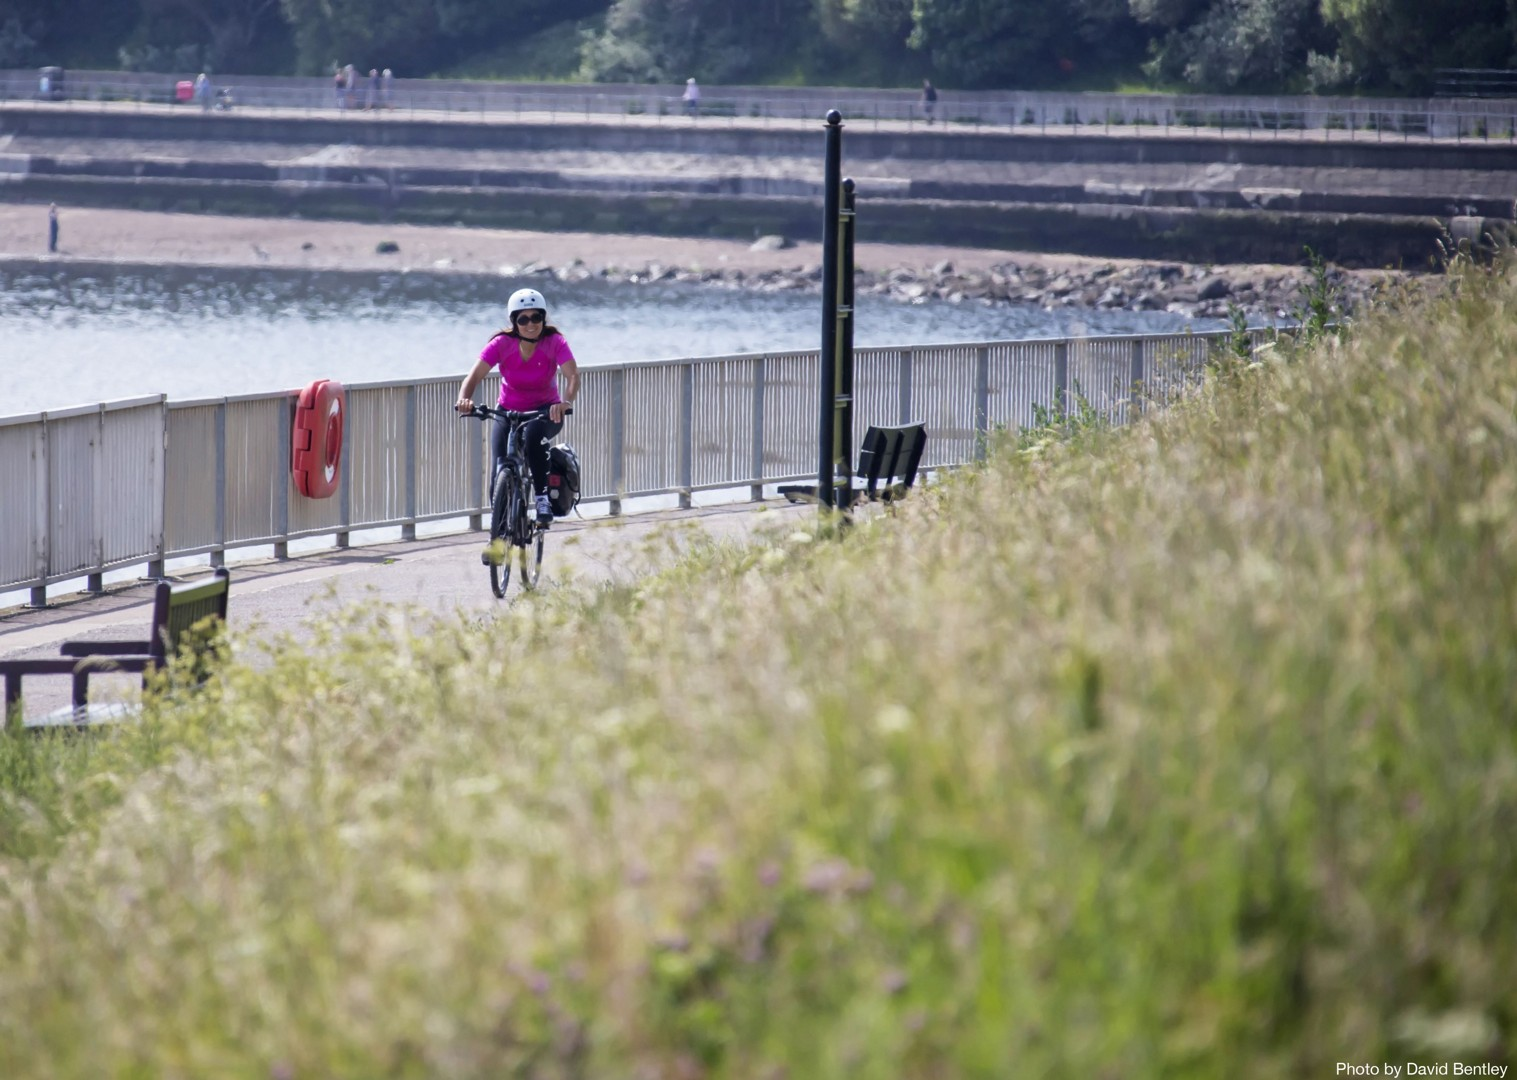 Self-Guided-Leisure-Cycling-Holiday-Hadrians-Cycleway-UK-take-a-break.jpg - UK - Hadrian's Cycleway - 4 Days Cycling - Self-Guided Leisure Cycling Holiday - Leisure Cycling